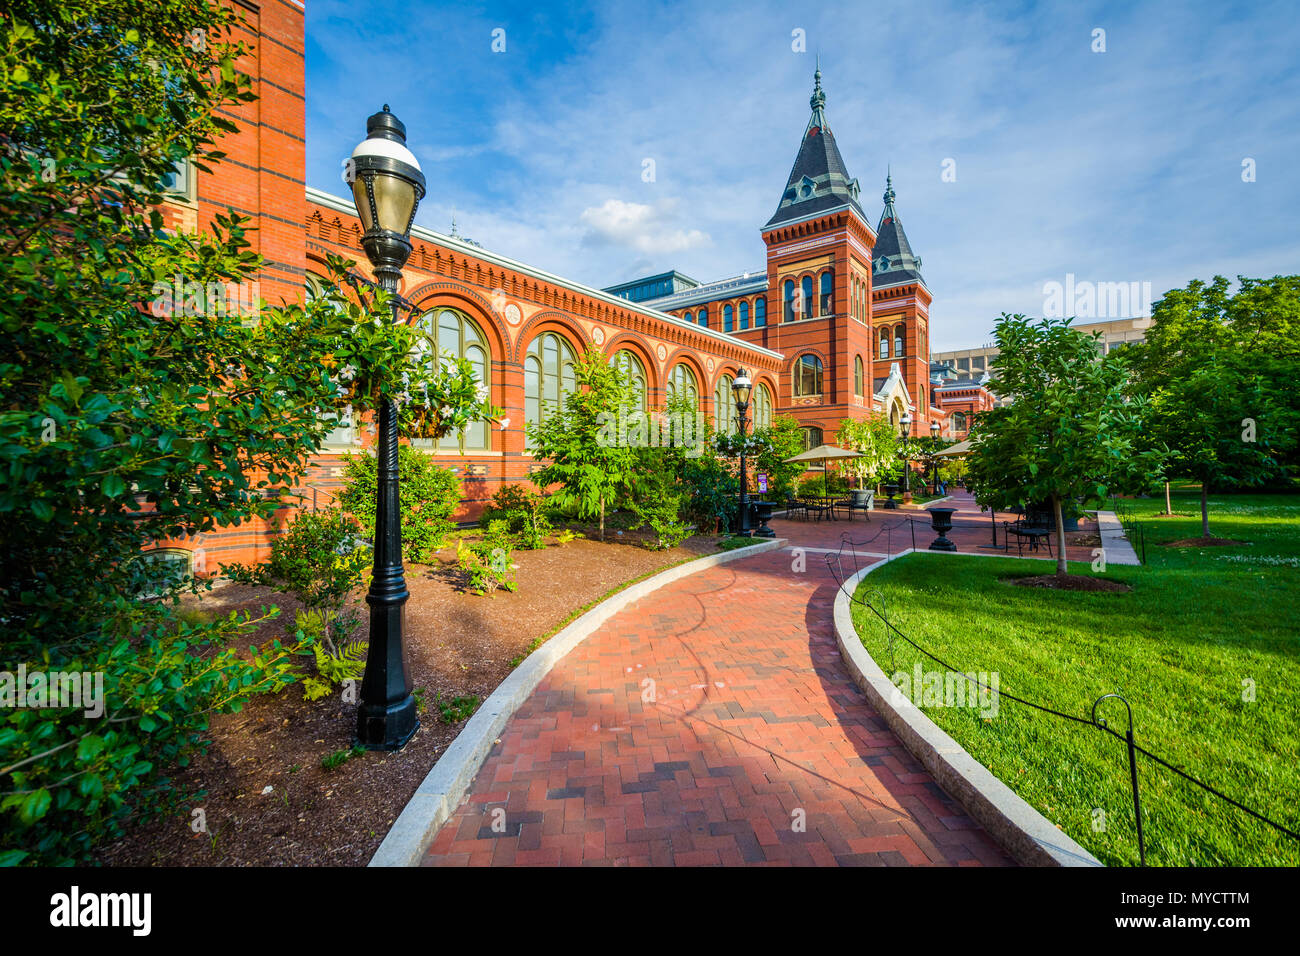 The Smithsonian Arts & Industries Building, in Washington, DC. - Stock Image